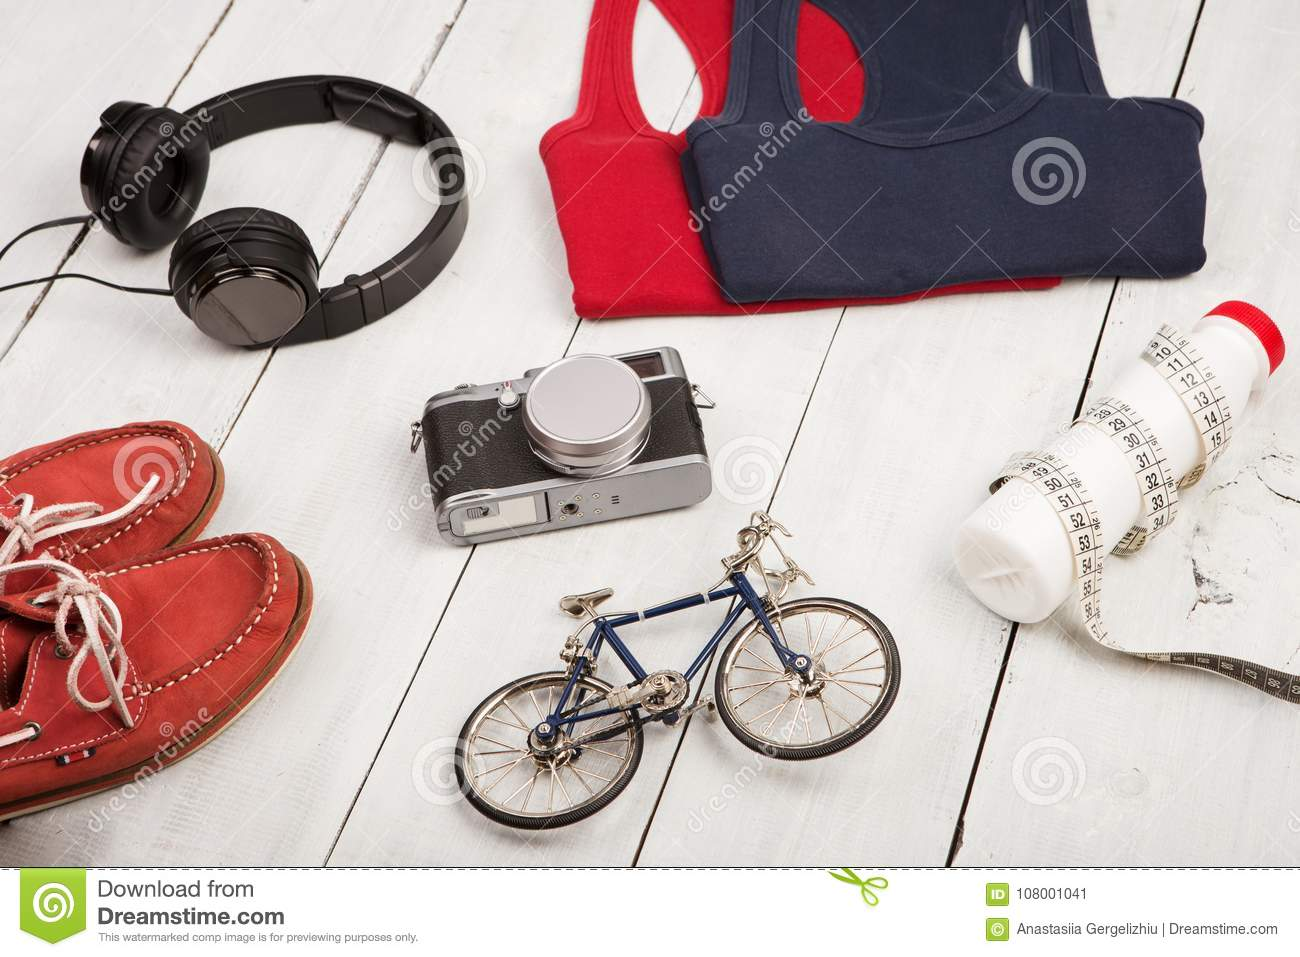 Bicycle model shoes shirts headphones camera bottle of water